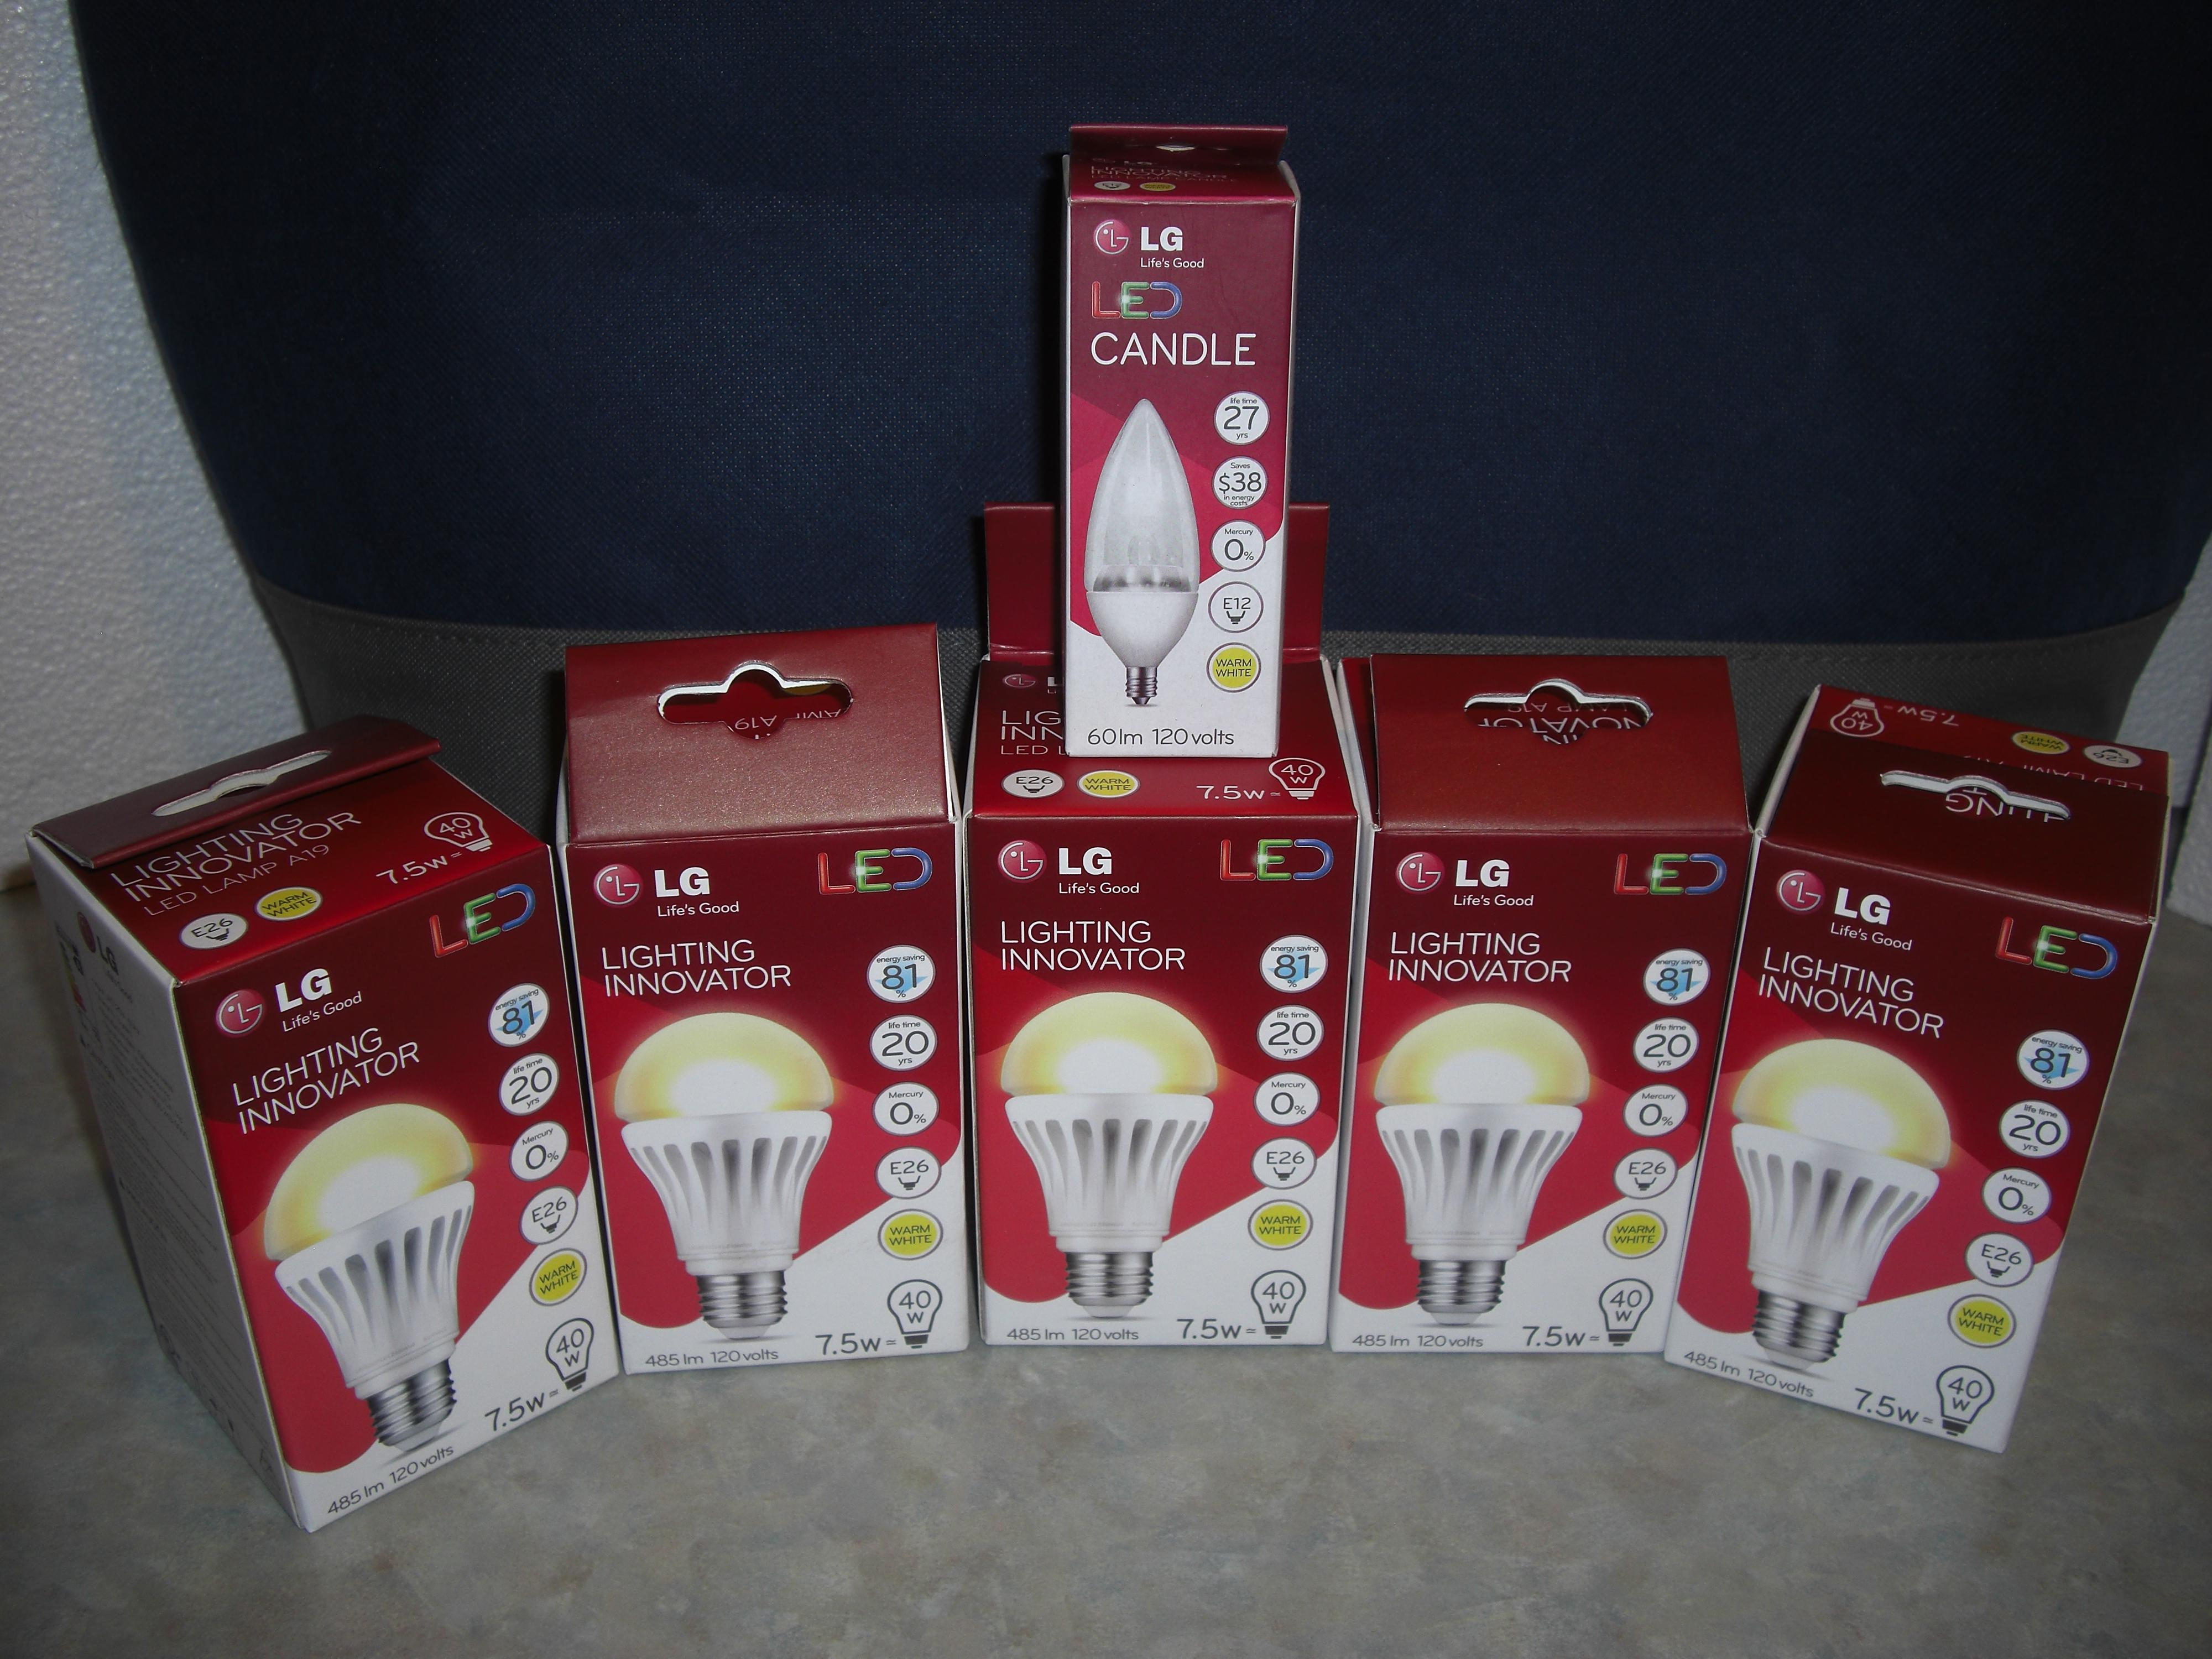 LG A19 7.5W LED Lightbulb 40W Equivalent